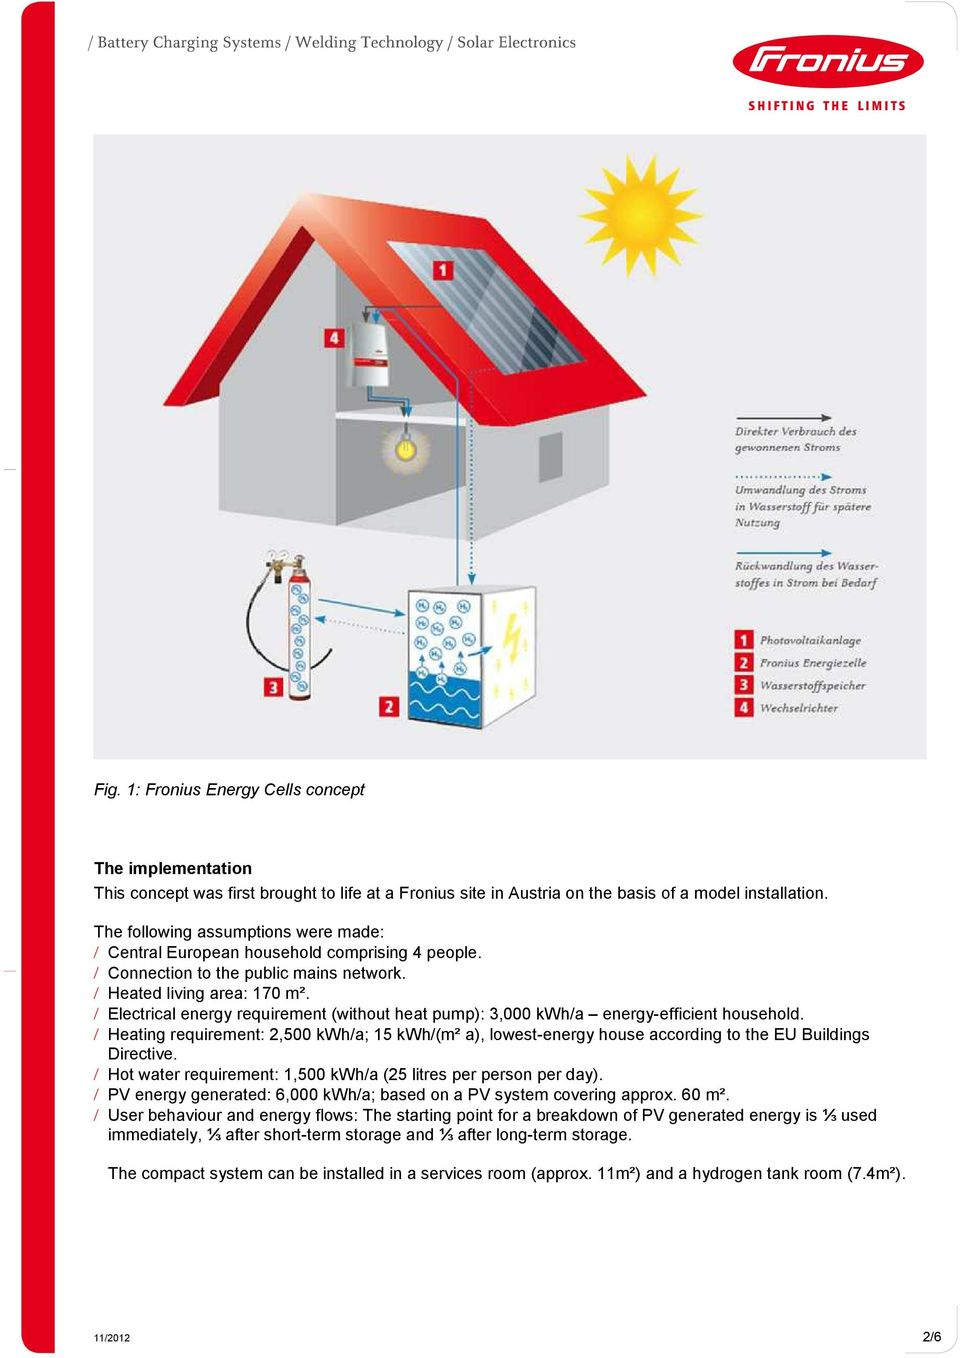 / Electrical energy requirement (without heat pump): 3,000 kwh/a energy-efficient household.